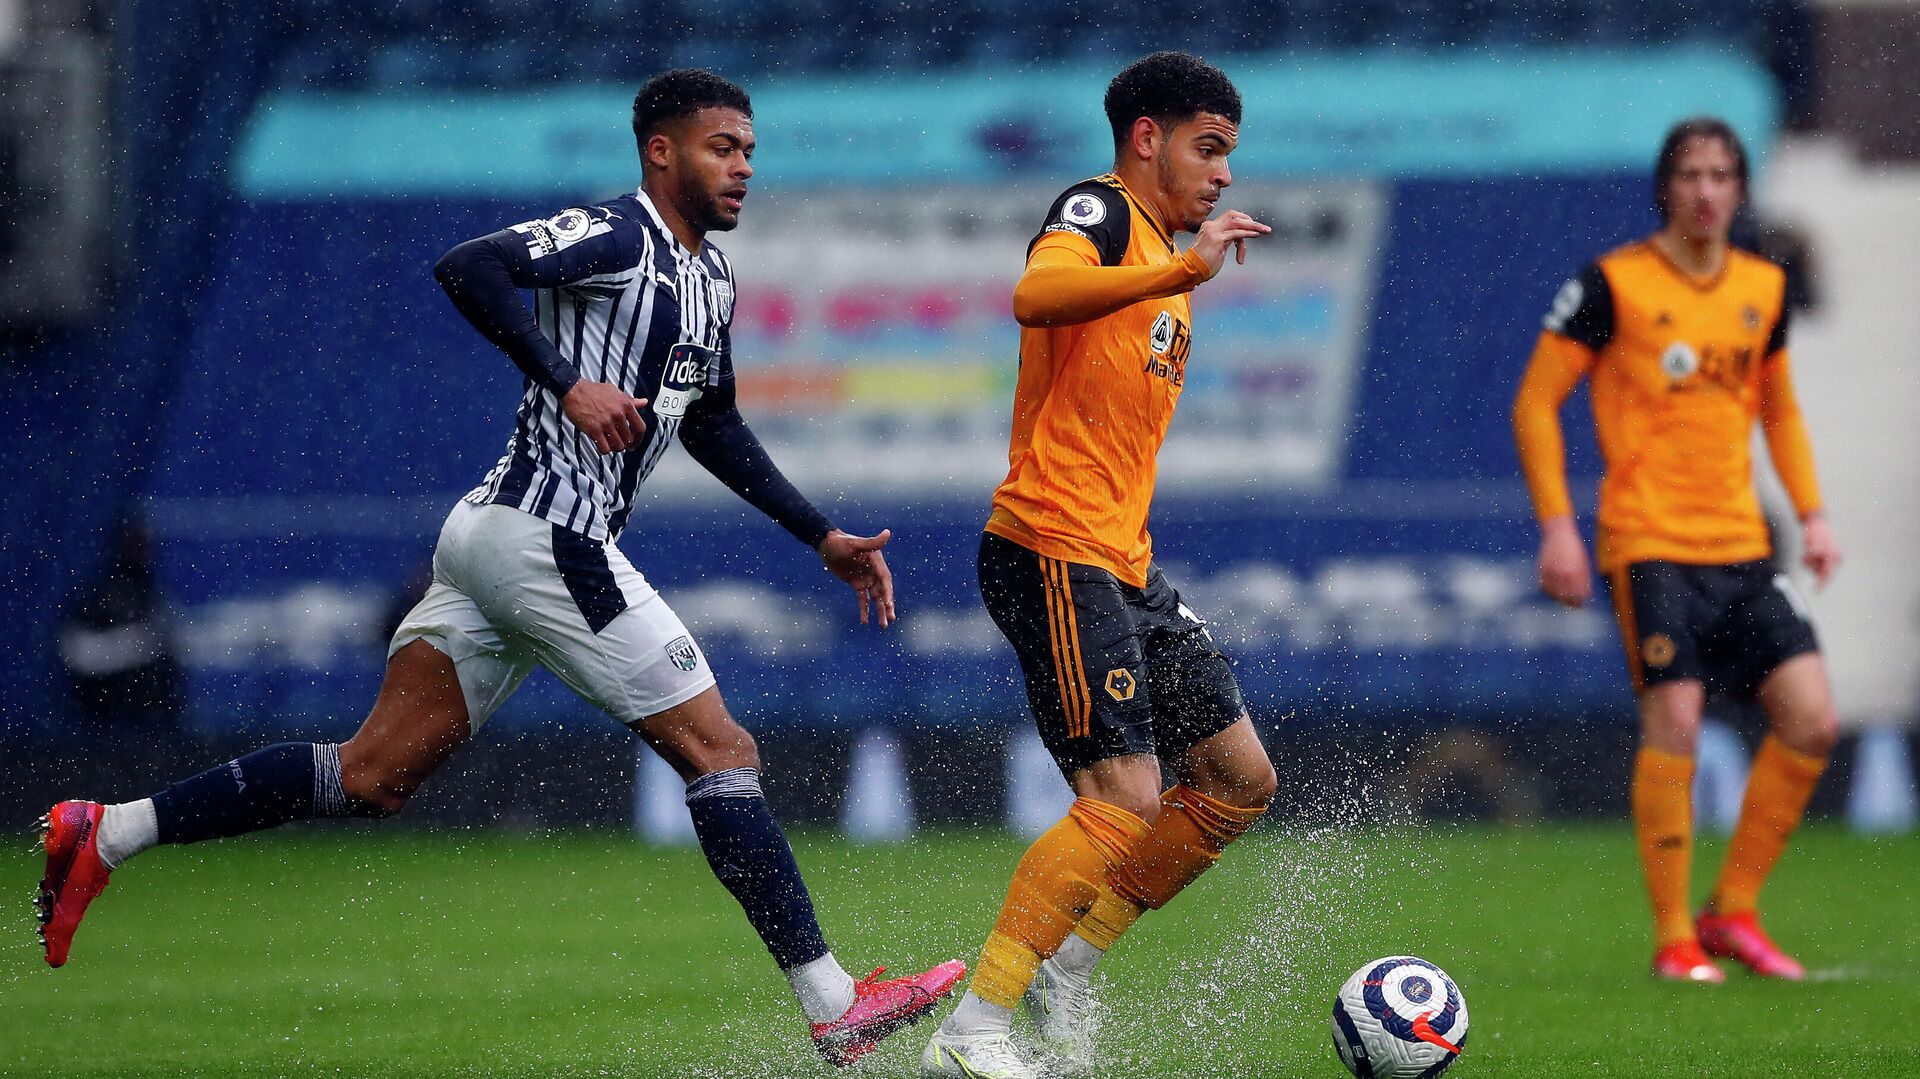 West Bromwich Albion's English defender Darnell Furlong (L) closes in on Wolverhampton Wanderers' English midfielder Morgan Gibbs-White during the English Premier League football match between West Bromwich Albion and Wolverhampton Wanderers at The Hawthorns in West Bromwich, central England on May 3, 2021. (Photo by Jason CAIRNDUFF / POOL / AFP) / RESTRICTED TO EDITORIAL USE. No use with unauthorized audio, video, data, fixture lists, club/league logos or 'live' services. Online in-match use limited to 120 images. An additional 40 images may be used in extra time. No video emulation. Social media in-match use limited to 120 images. An additional 40 images may be used in extra time. No use in betting publications, games or single club/league/player publications. /  - РИА Новости, 1920, 03.05.2021